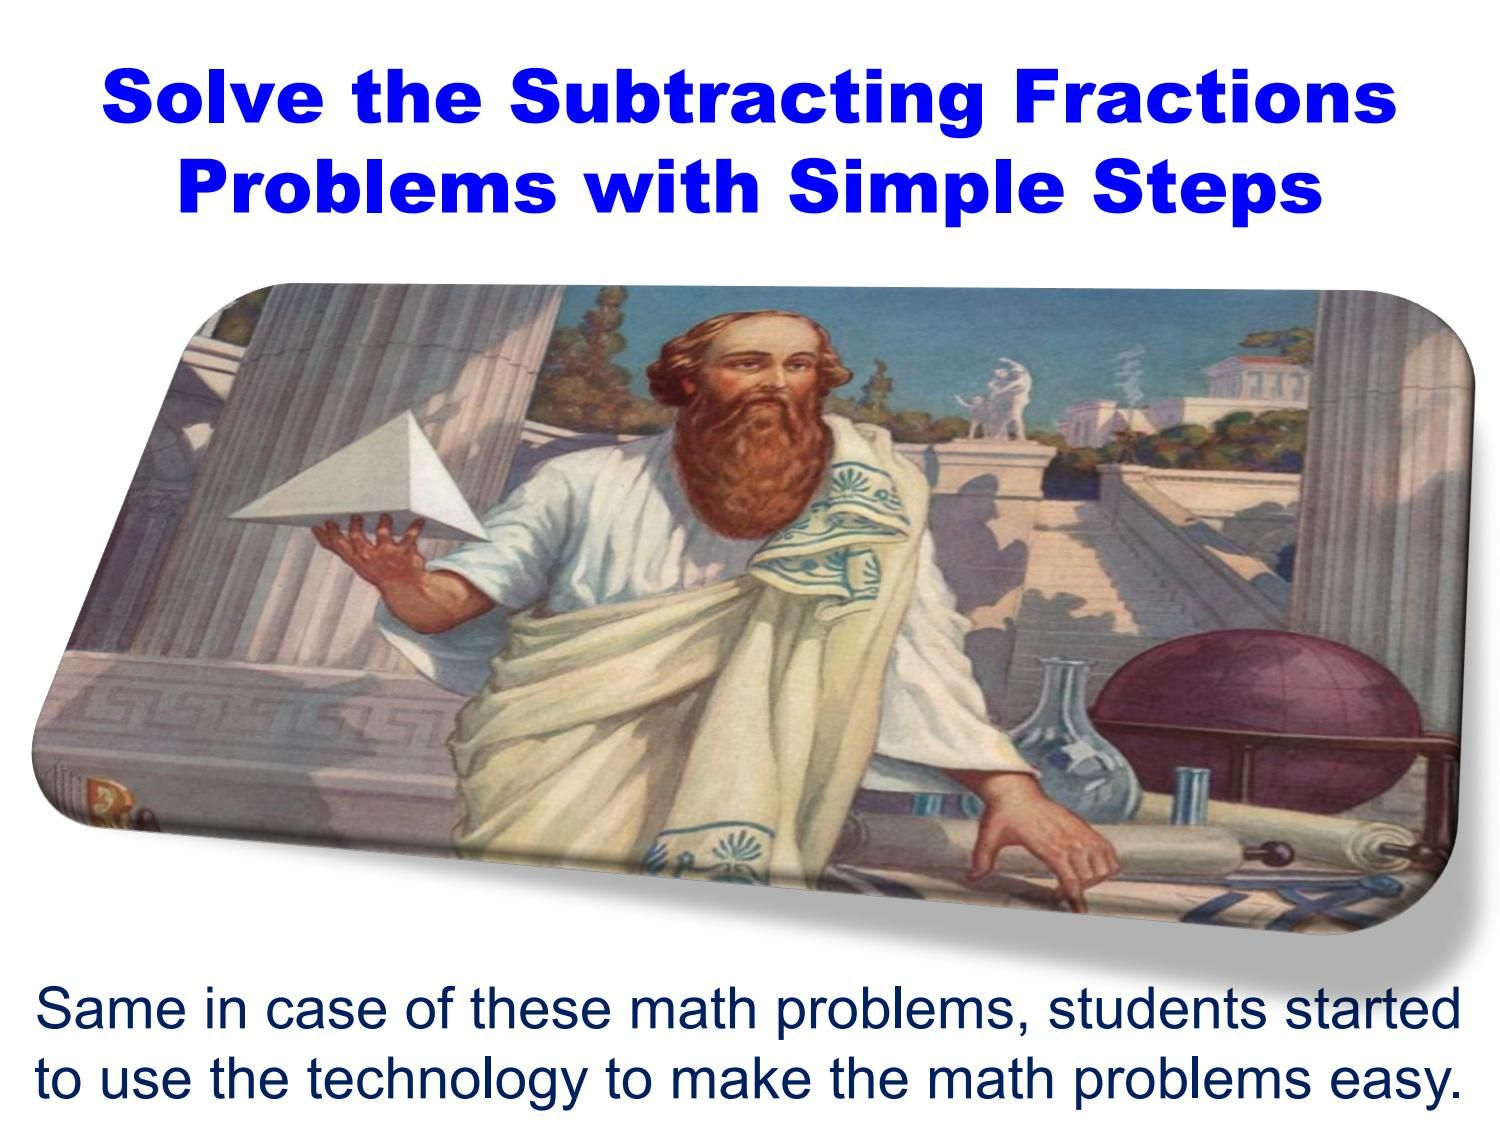 Solve the Subtracting Fractions problems with Simple Steps